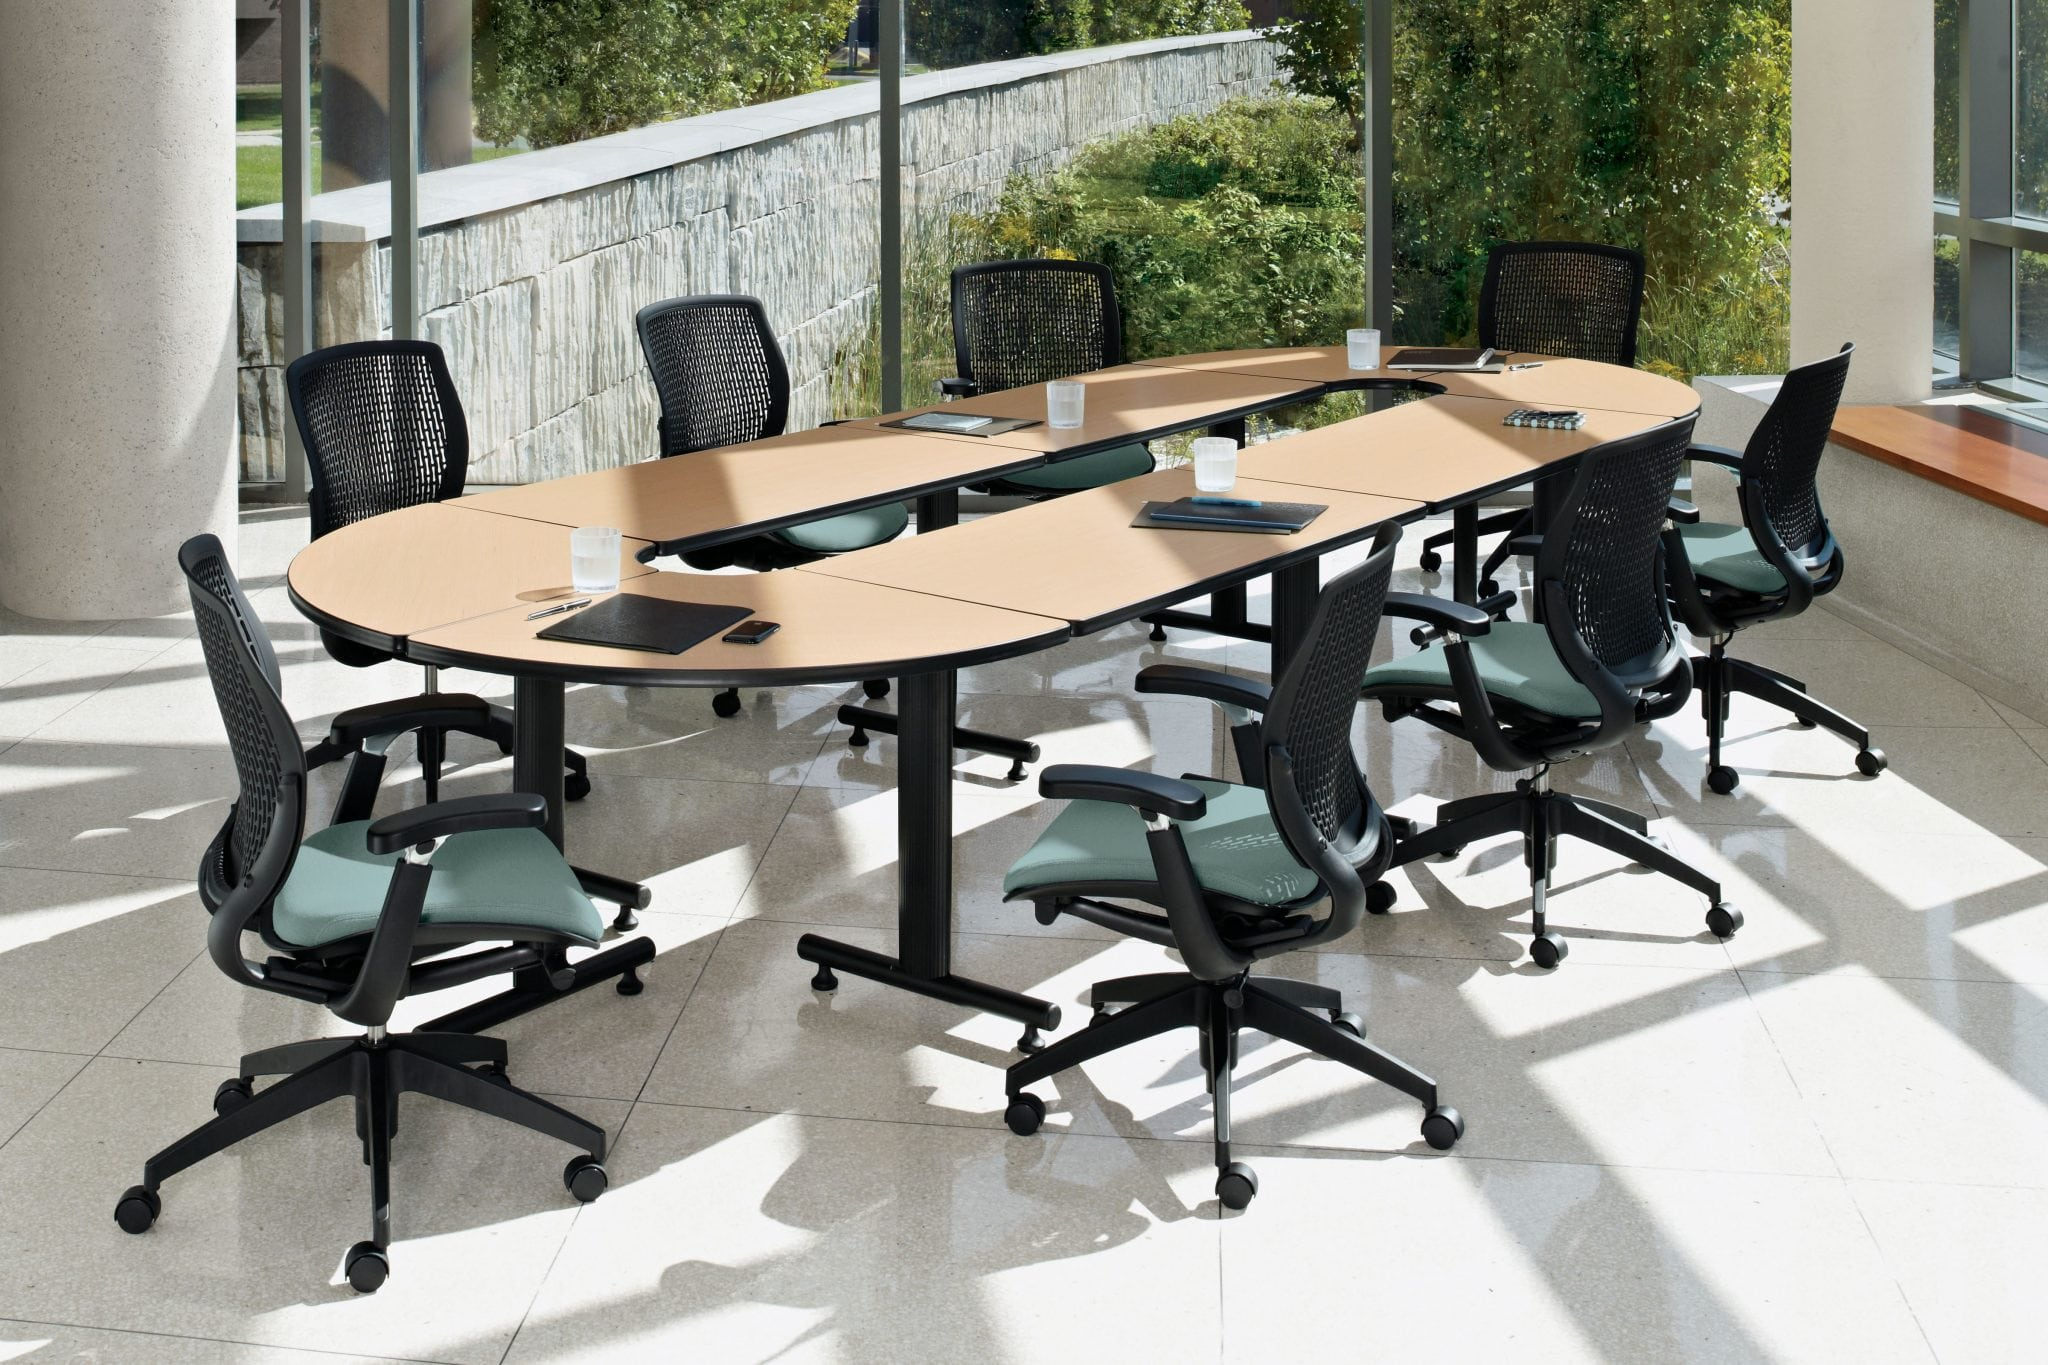 ConnecTABLES is an affordable, highly flexible modular system of linking and freestanding tables.